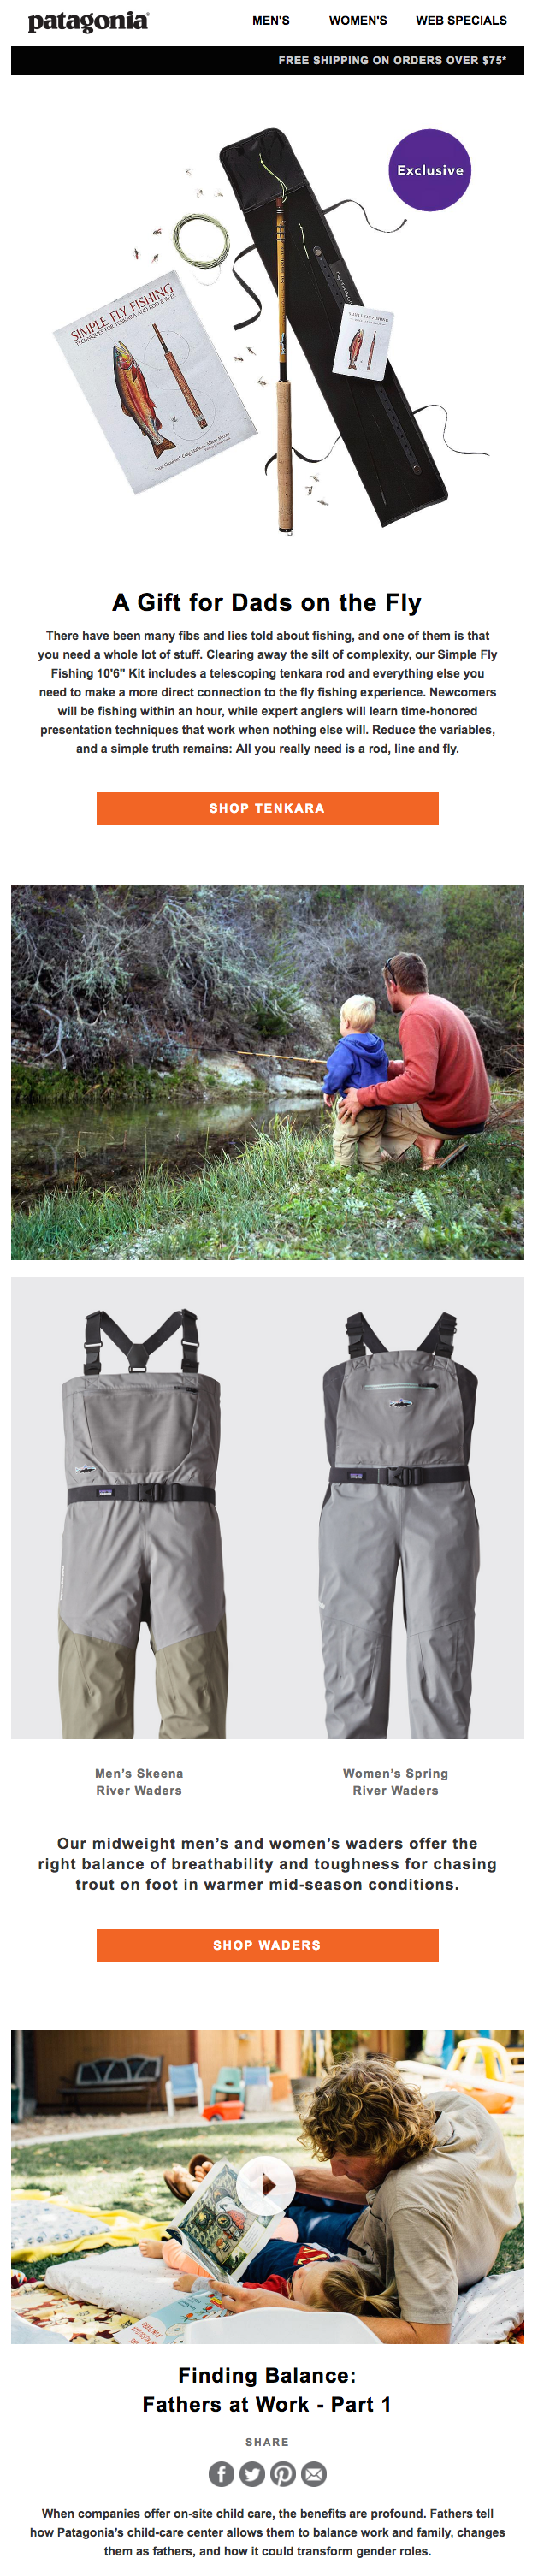 patagonia father's day emails